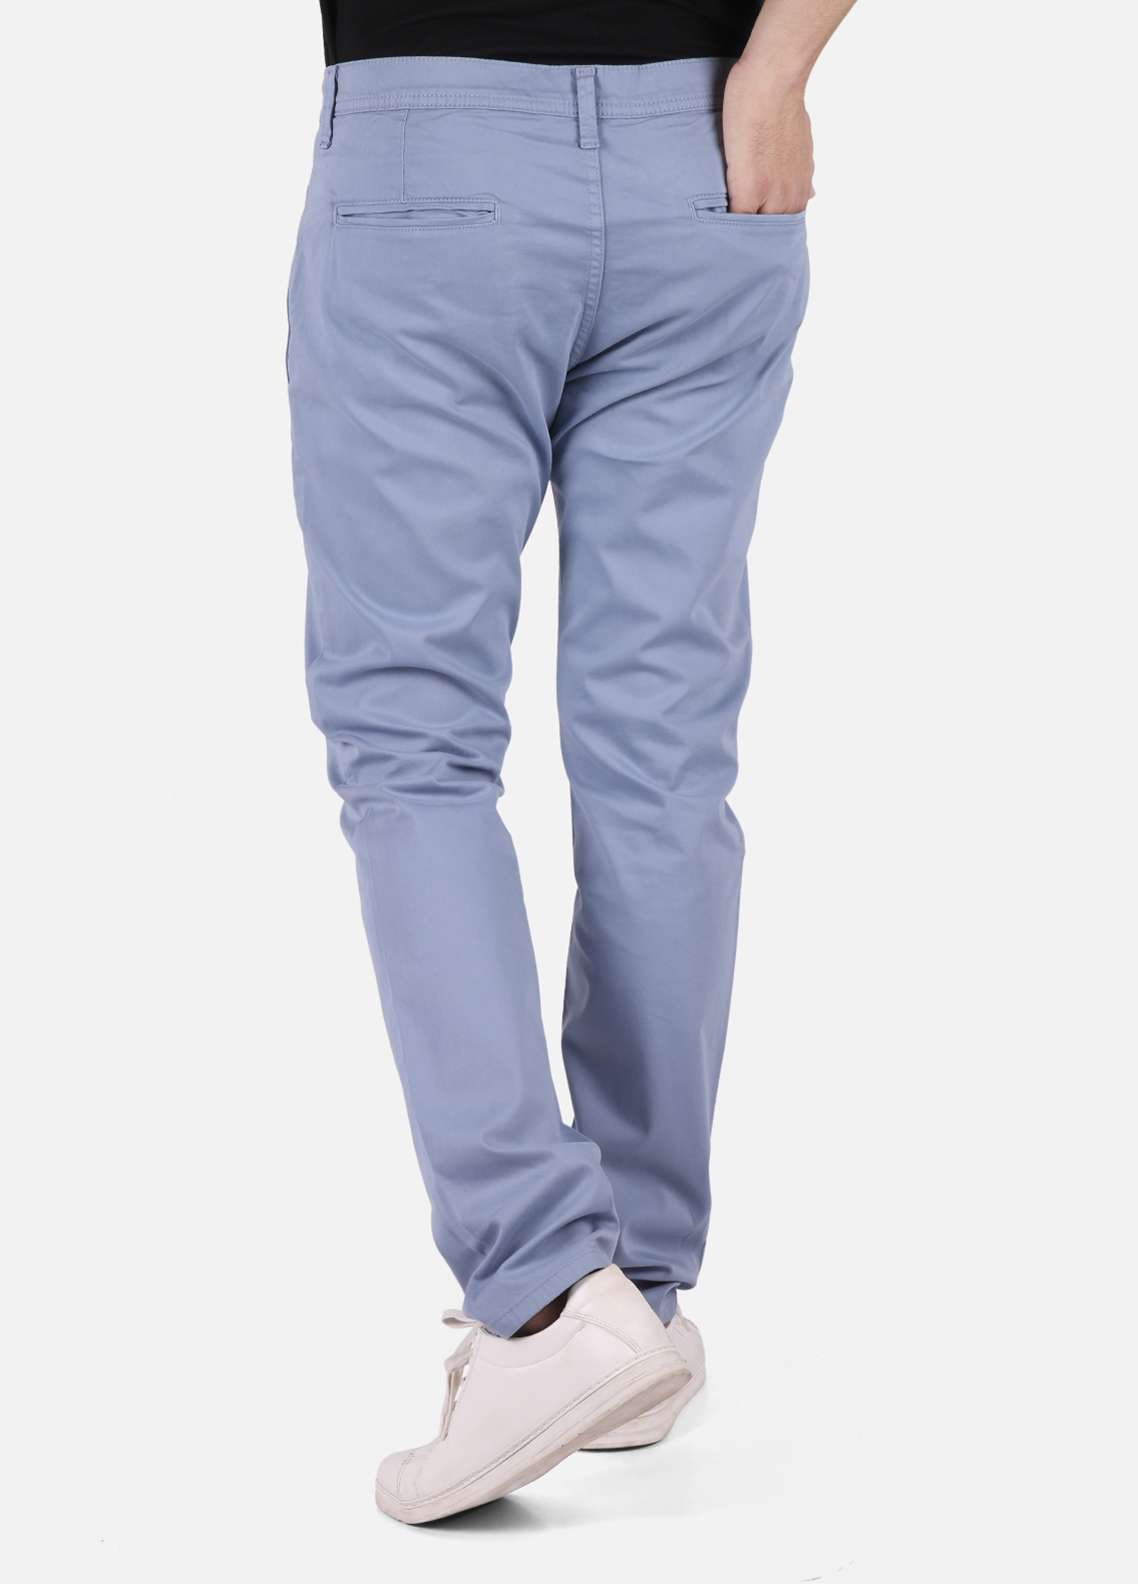 Furor  Chino Pants for Men - Blue FRM18C FMBCP18-010